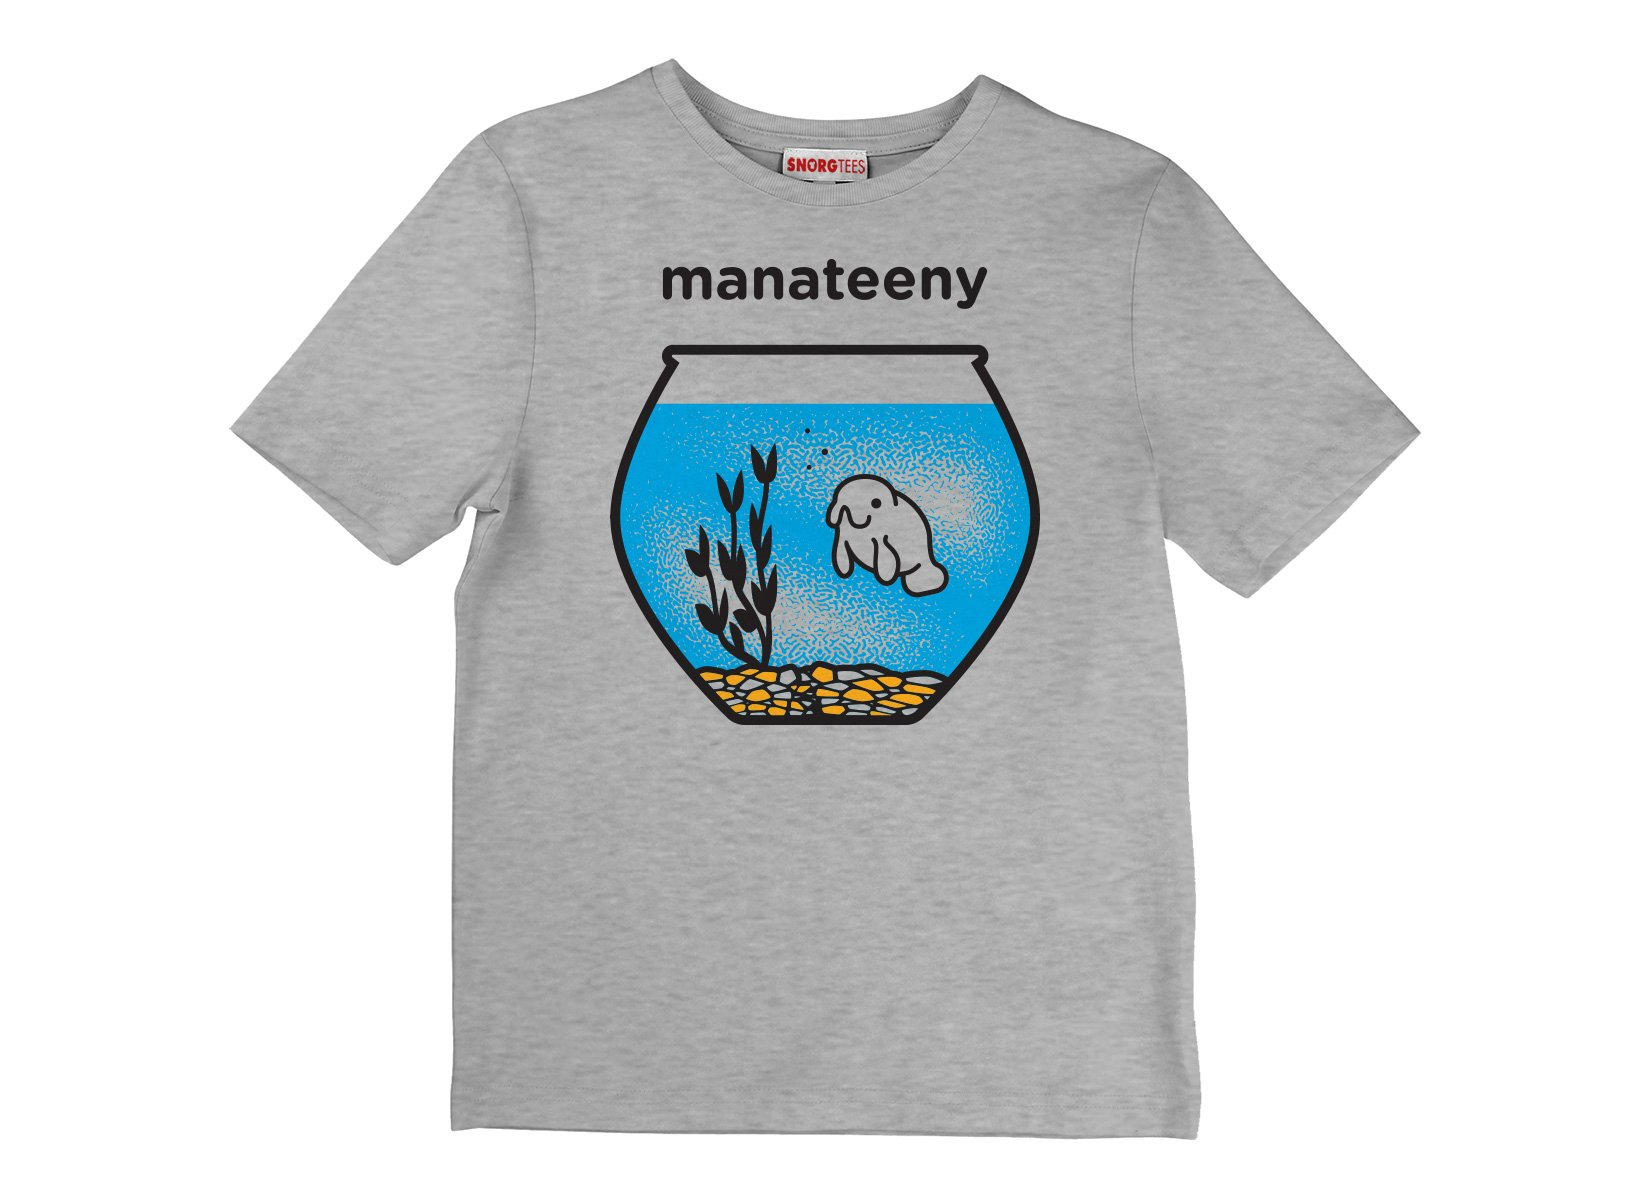 Manateeny on Kids T-Shirt